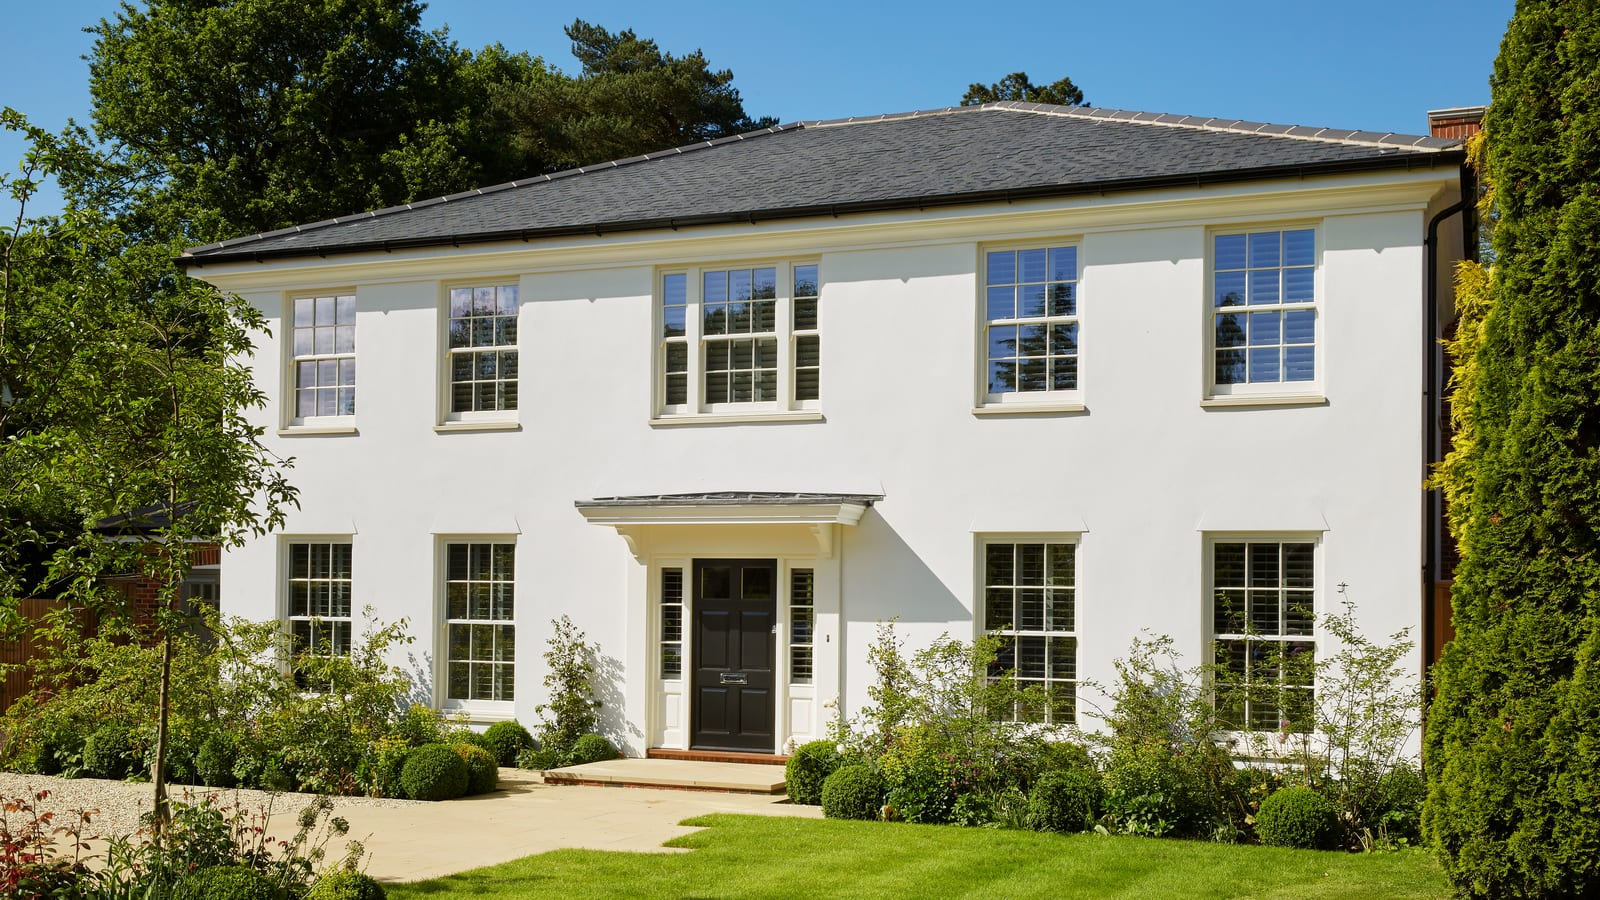 New build with Legacy Spring Sash Windows and Entrance Door